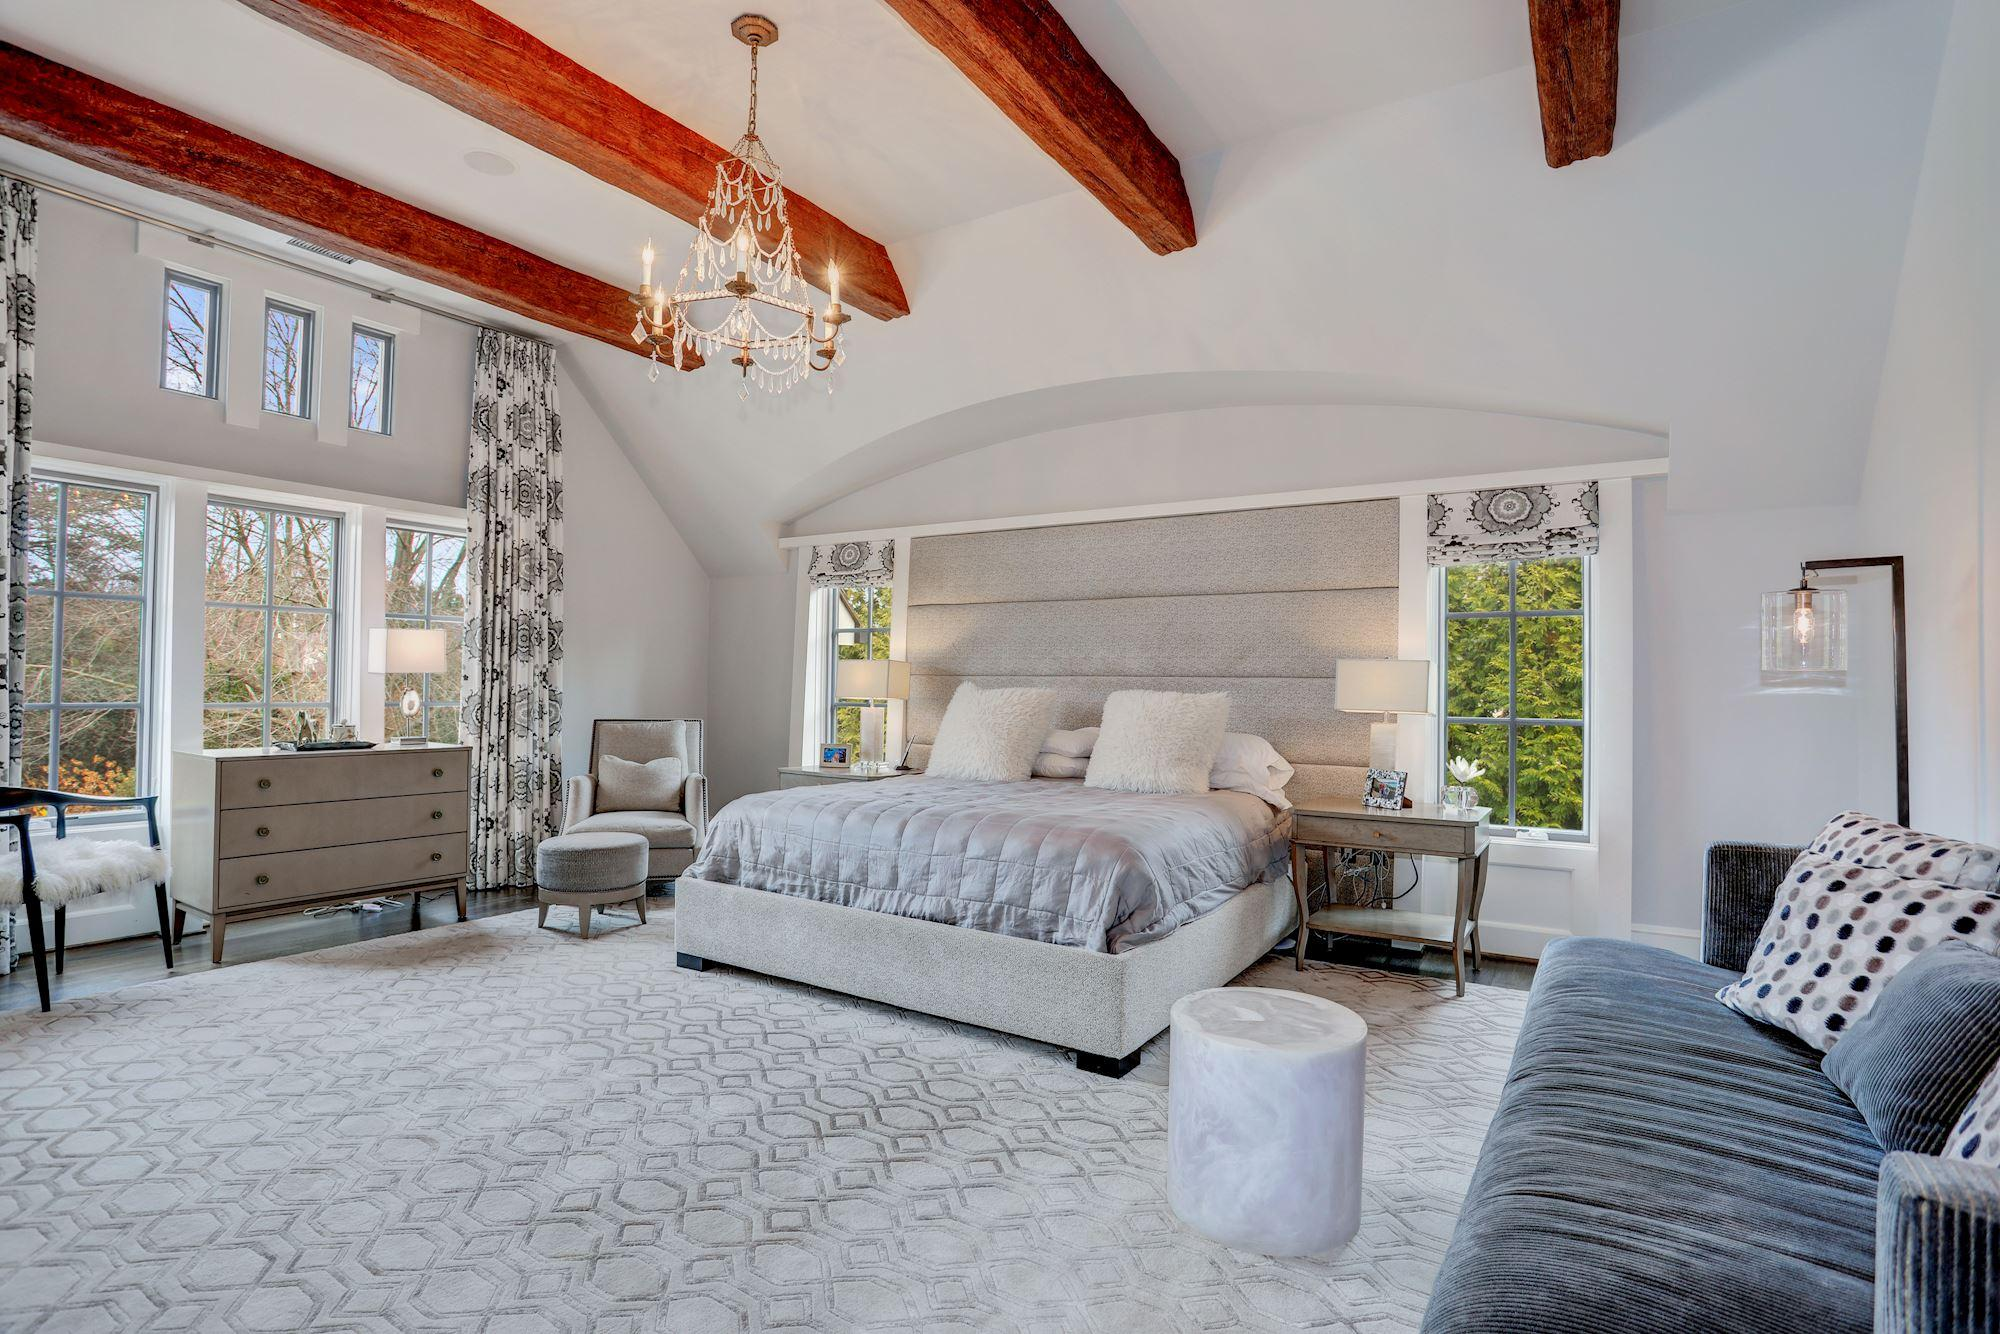 The upper level features five bedrooms, including the master suite with beamed ceilings (Image: Courtesy HomeVisit)<p></p>